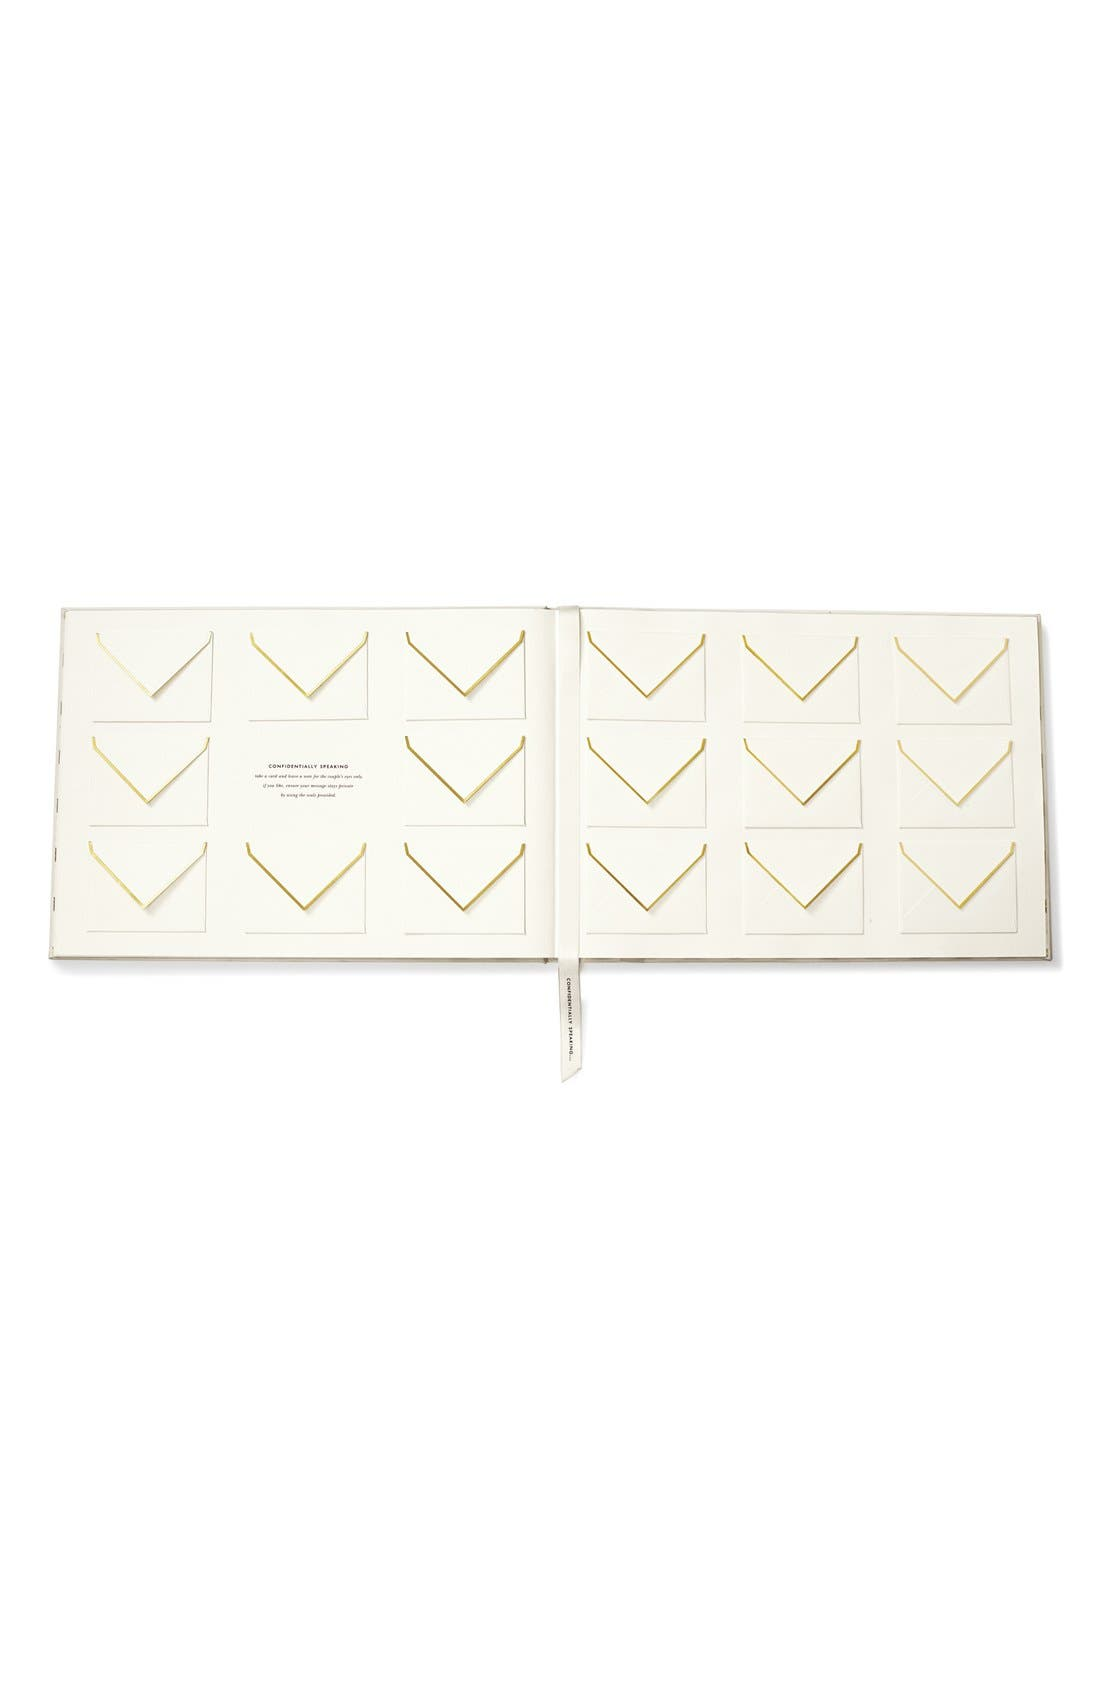 KATE SPADE NEW YORK,                             'notes to the bride & groom' guest book,                             Alternate thumbnail 4, color,                             100